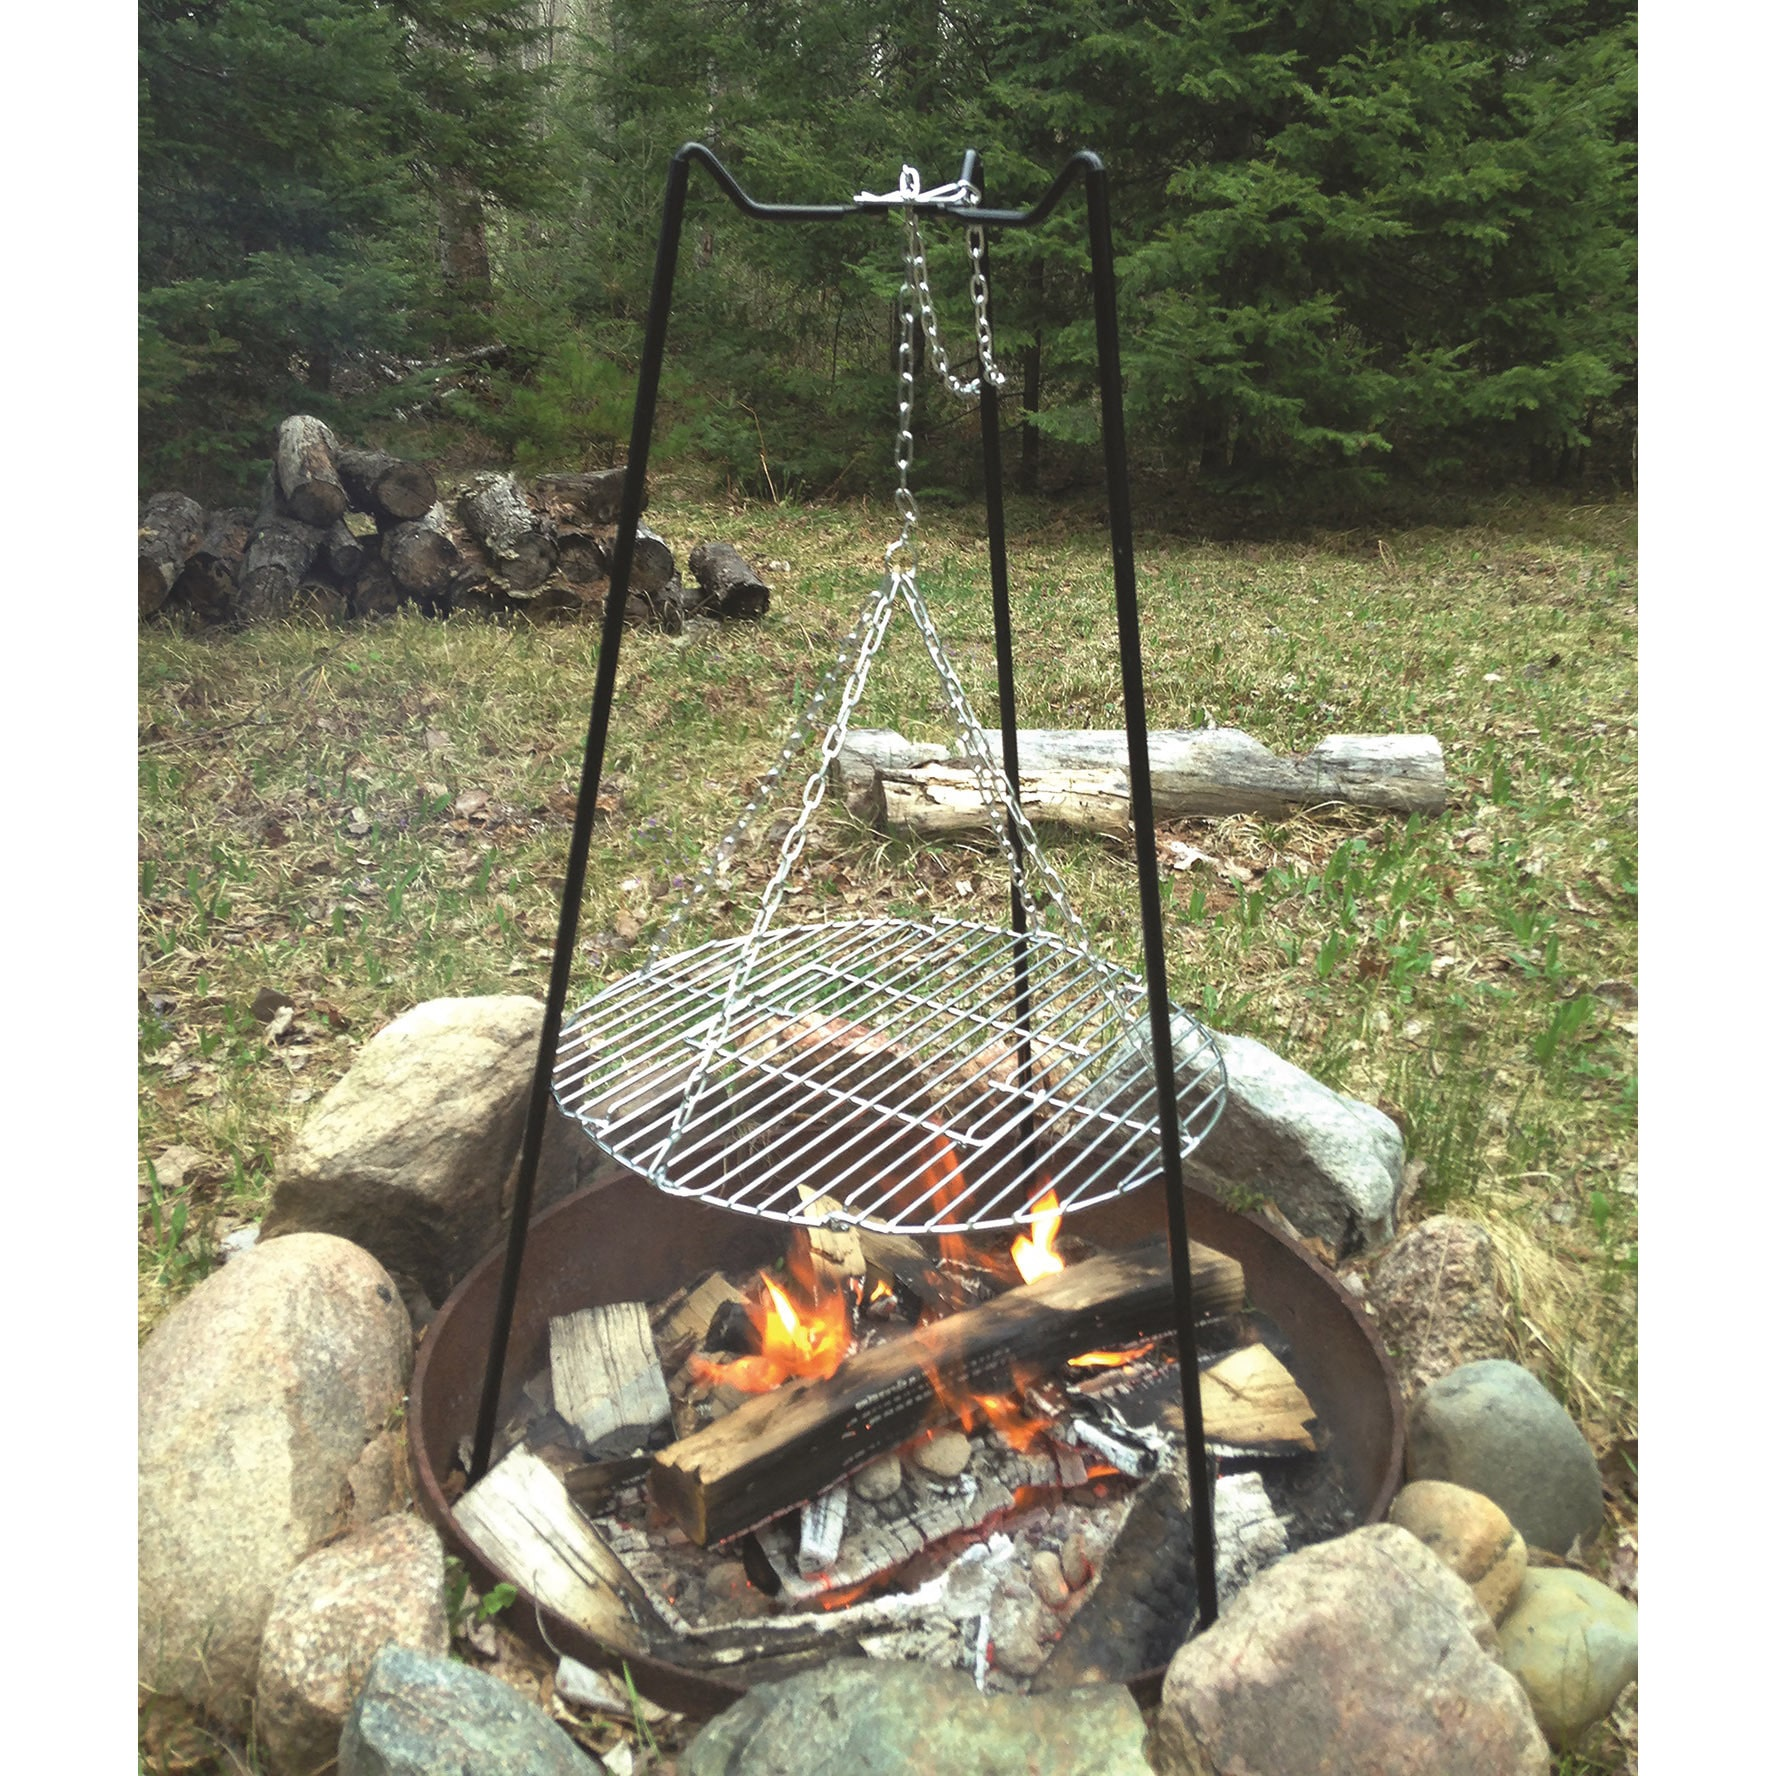 17 Best Images About Camping Cooking Equipment On: Tri Pod Grill Barbeque Roasting Portable Outdoor Cooking